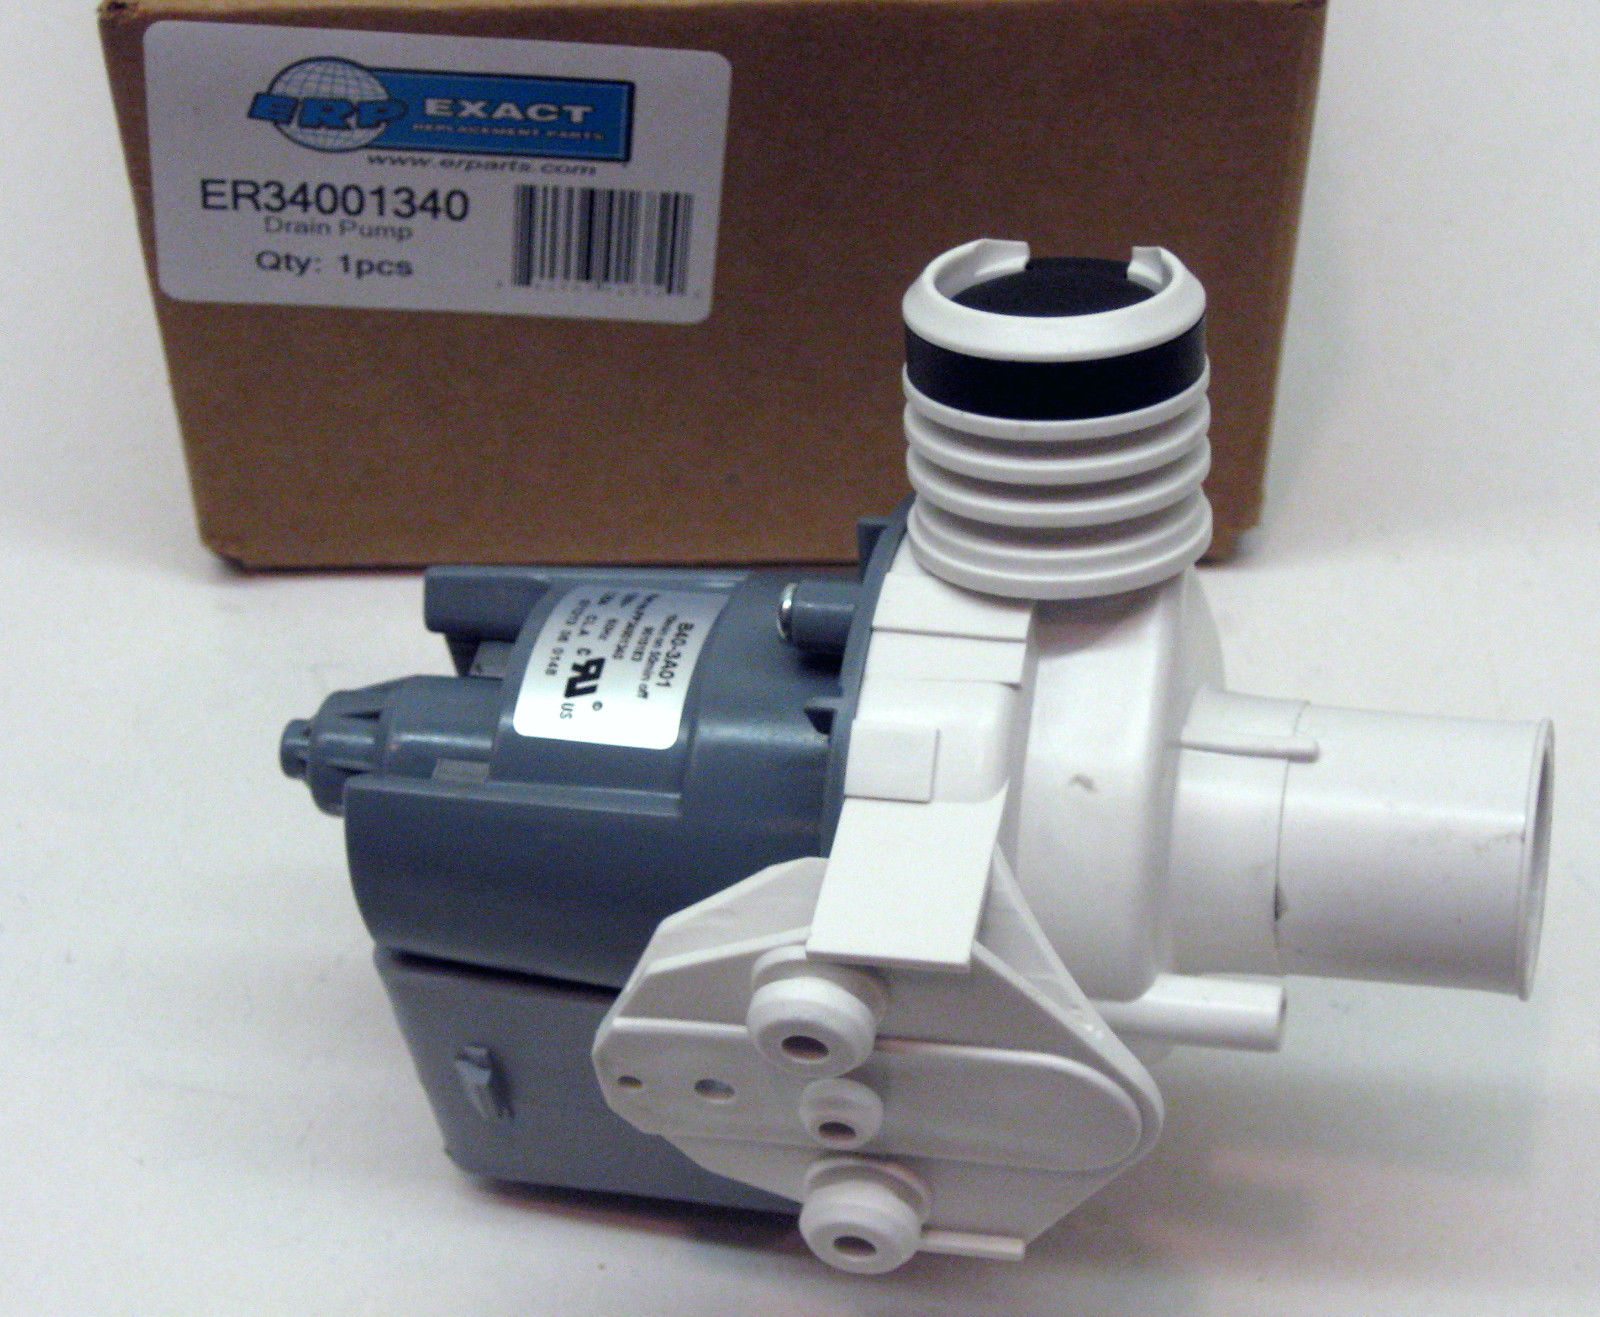 Washing Machine Drain Pump For Whirlpool 34001340